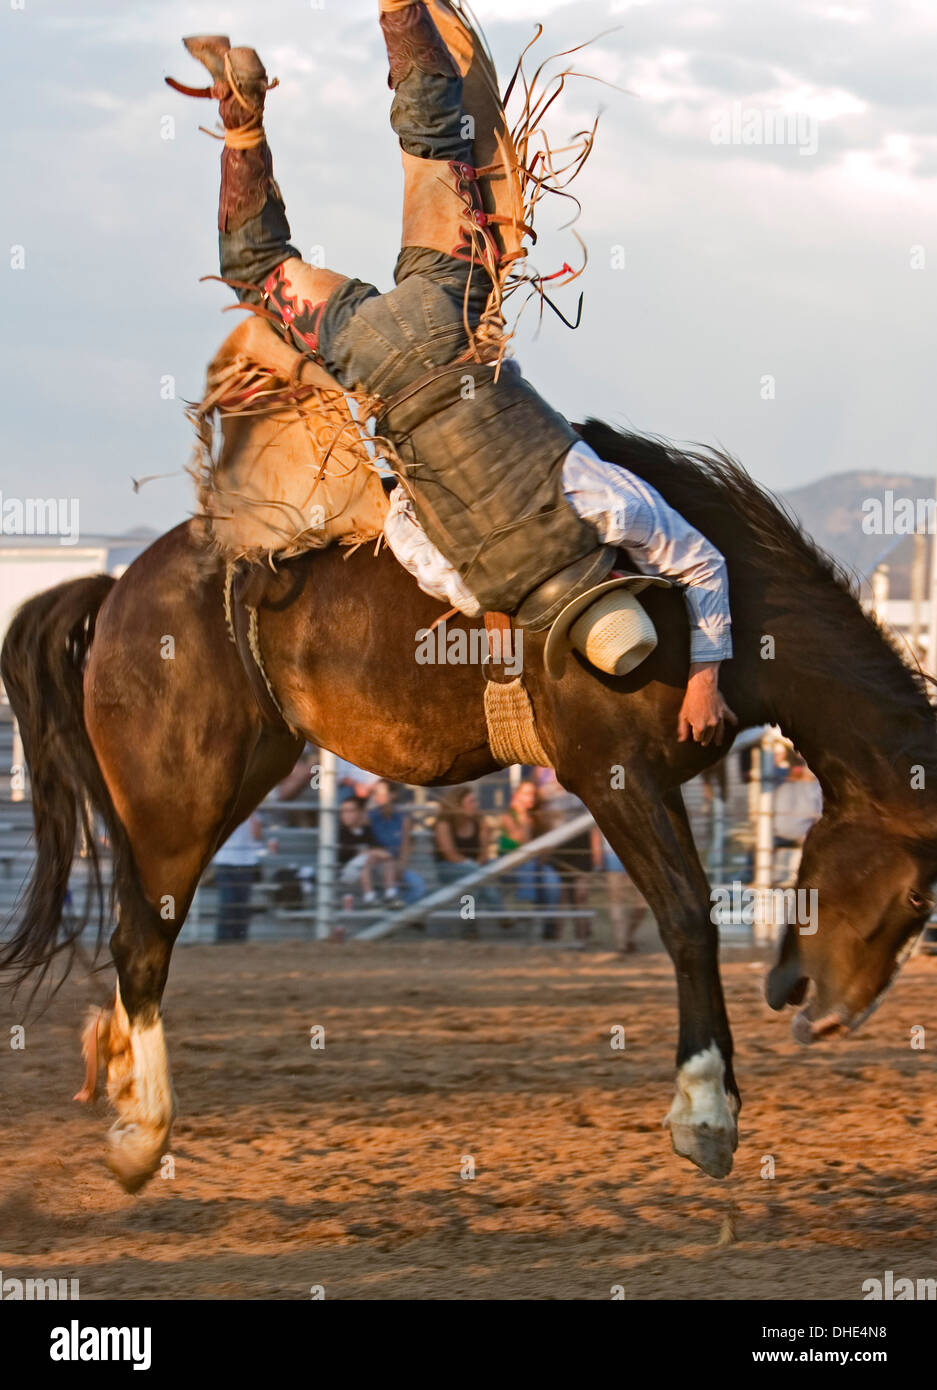 Cowboy Upside Down On Bucking Horse Bareback Riding